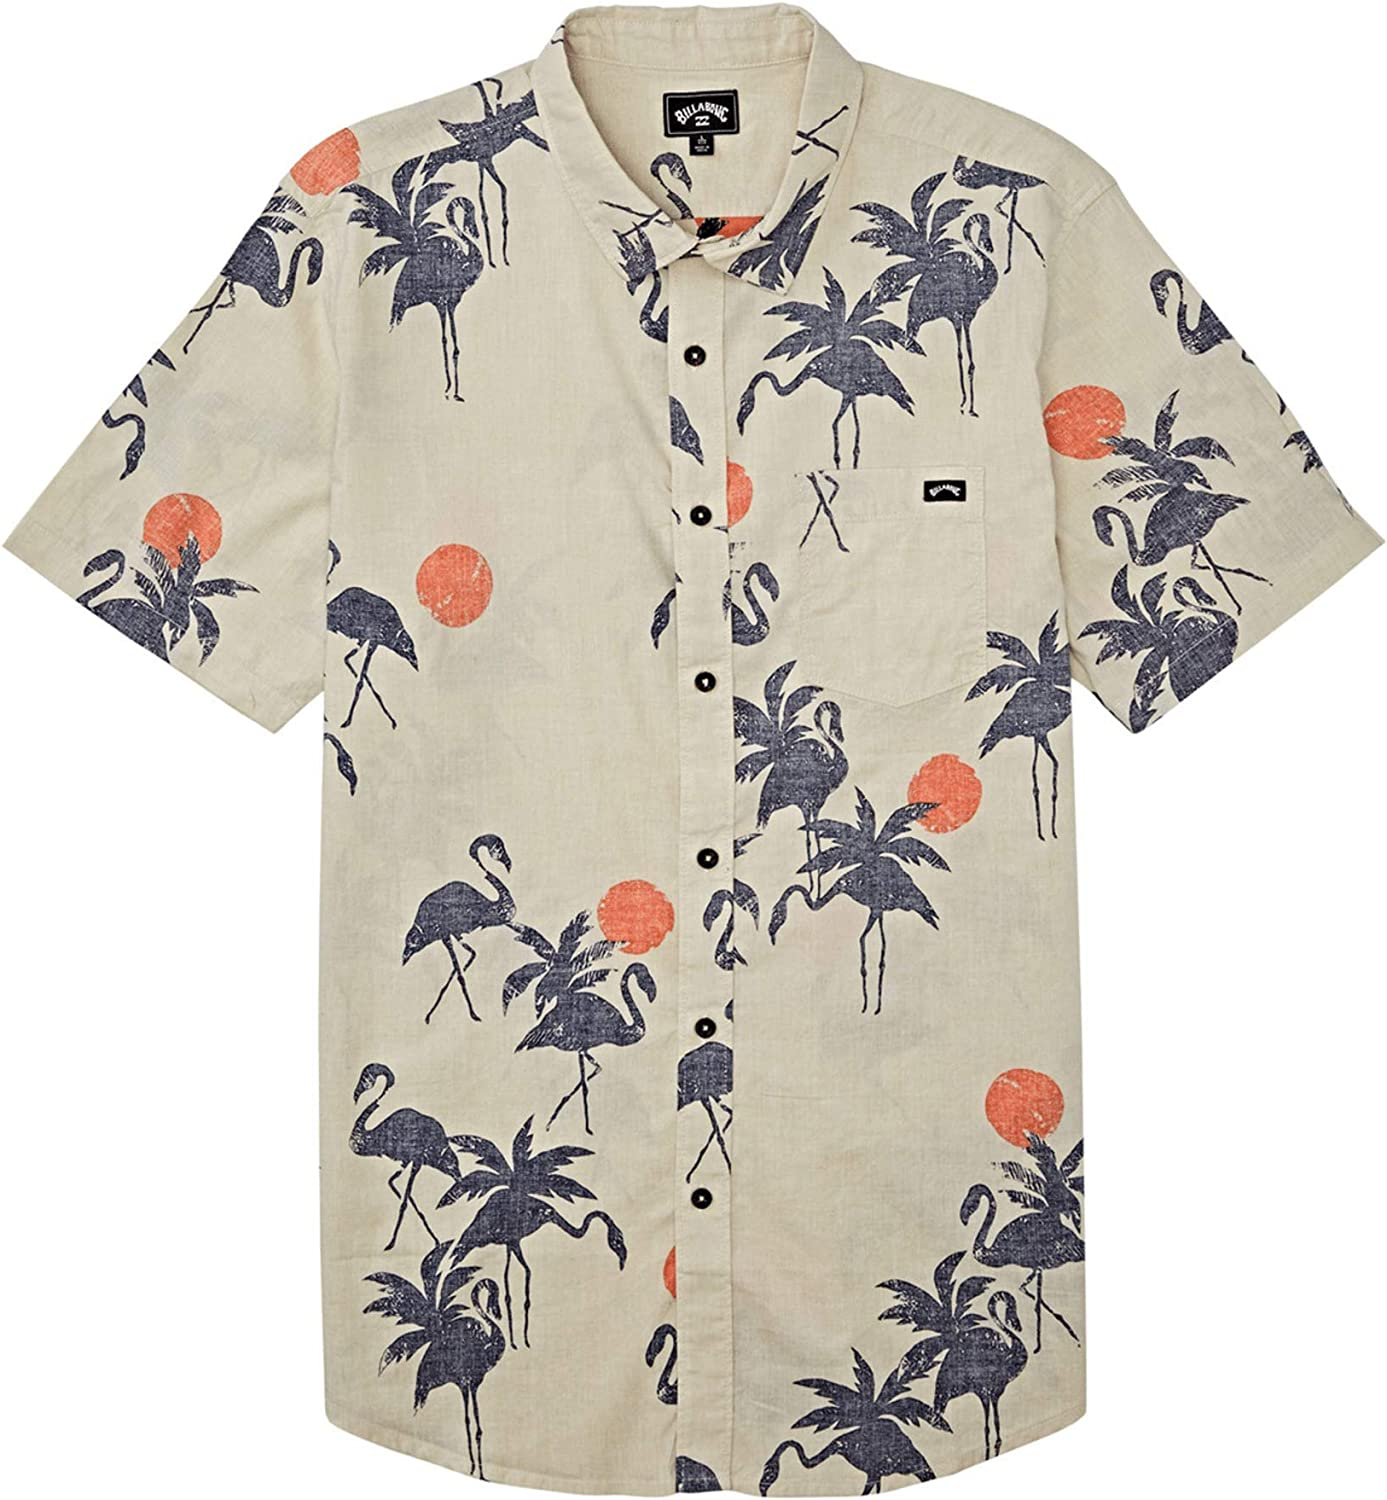 Billabong Men's Sundays Woven Floral and Small Scale Printed Pattern Short Sleeve Shirt: Clothing